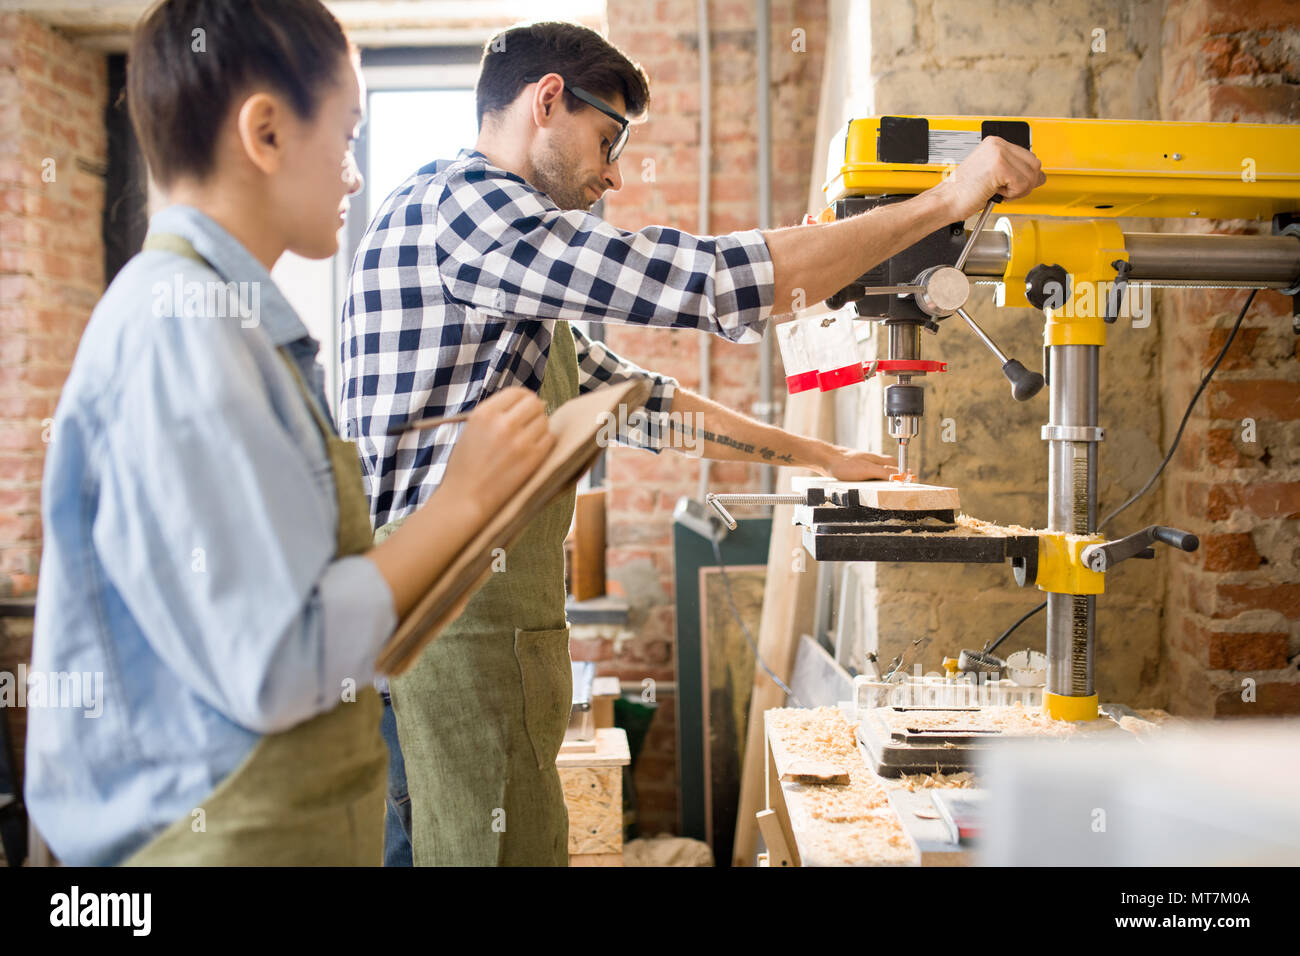 Two Carpenters Working with Wood - Stock Image